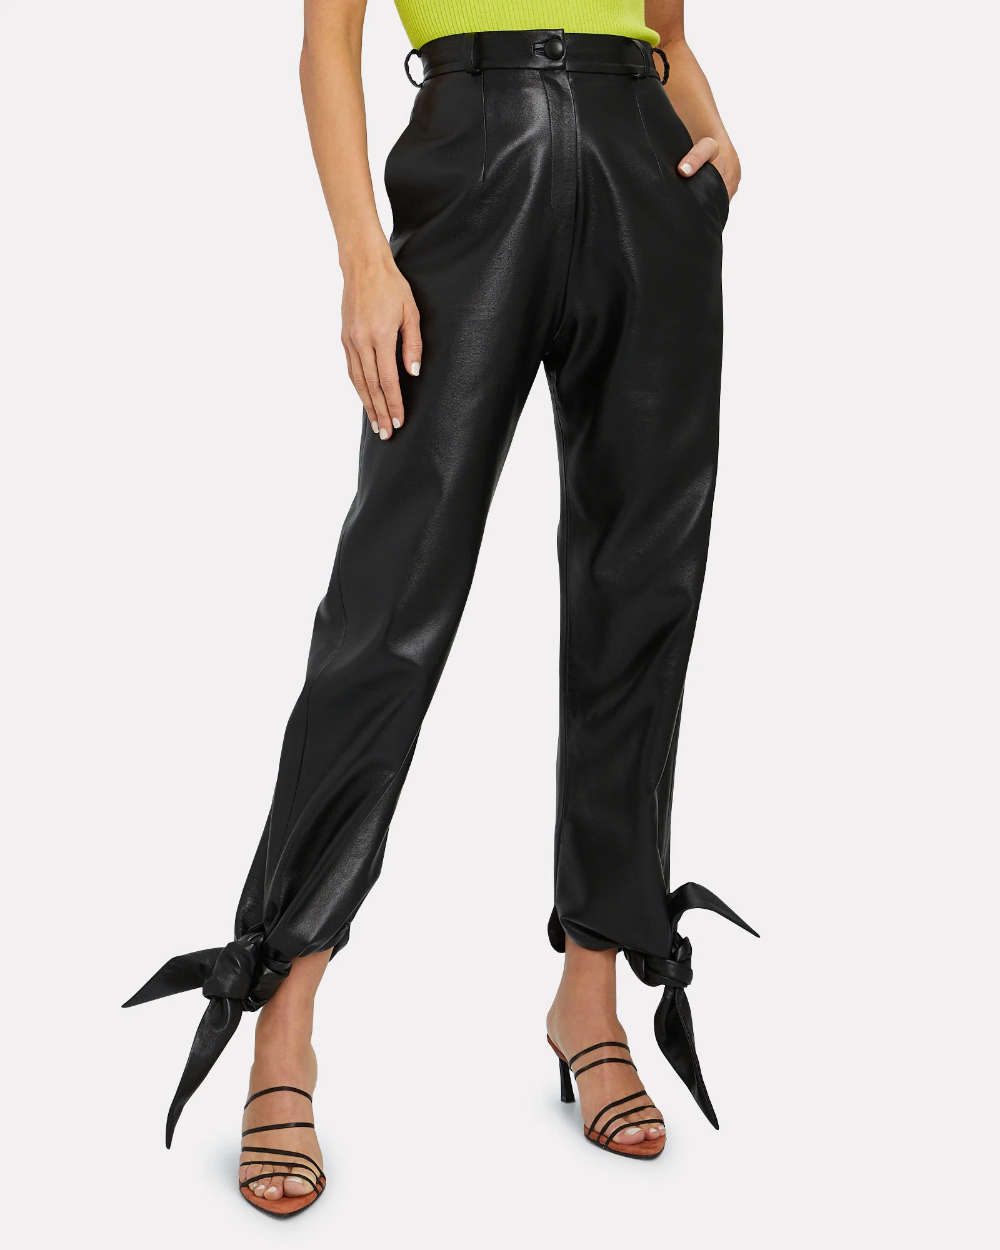 Vegan Leather Tie Ankle Pants In 2020 Ankle Pants Pants Vegan Leather